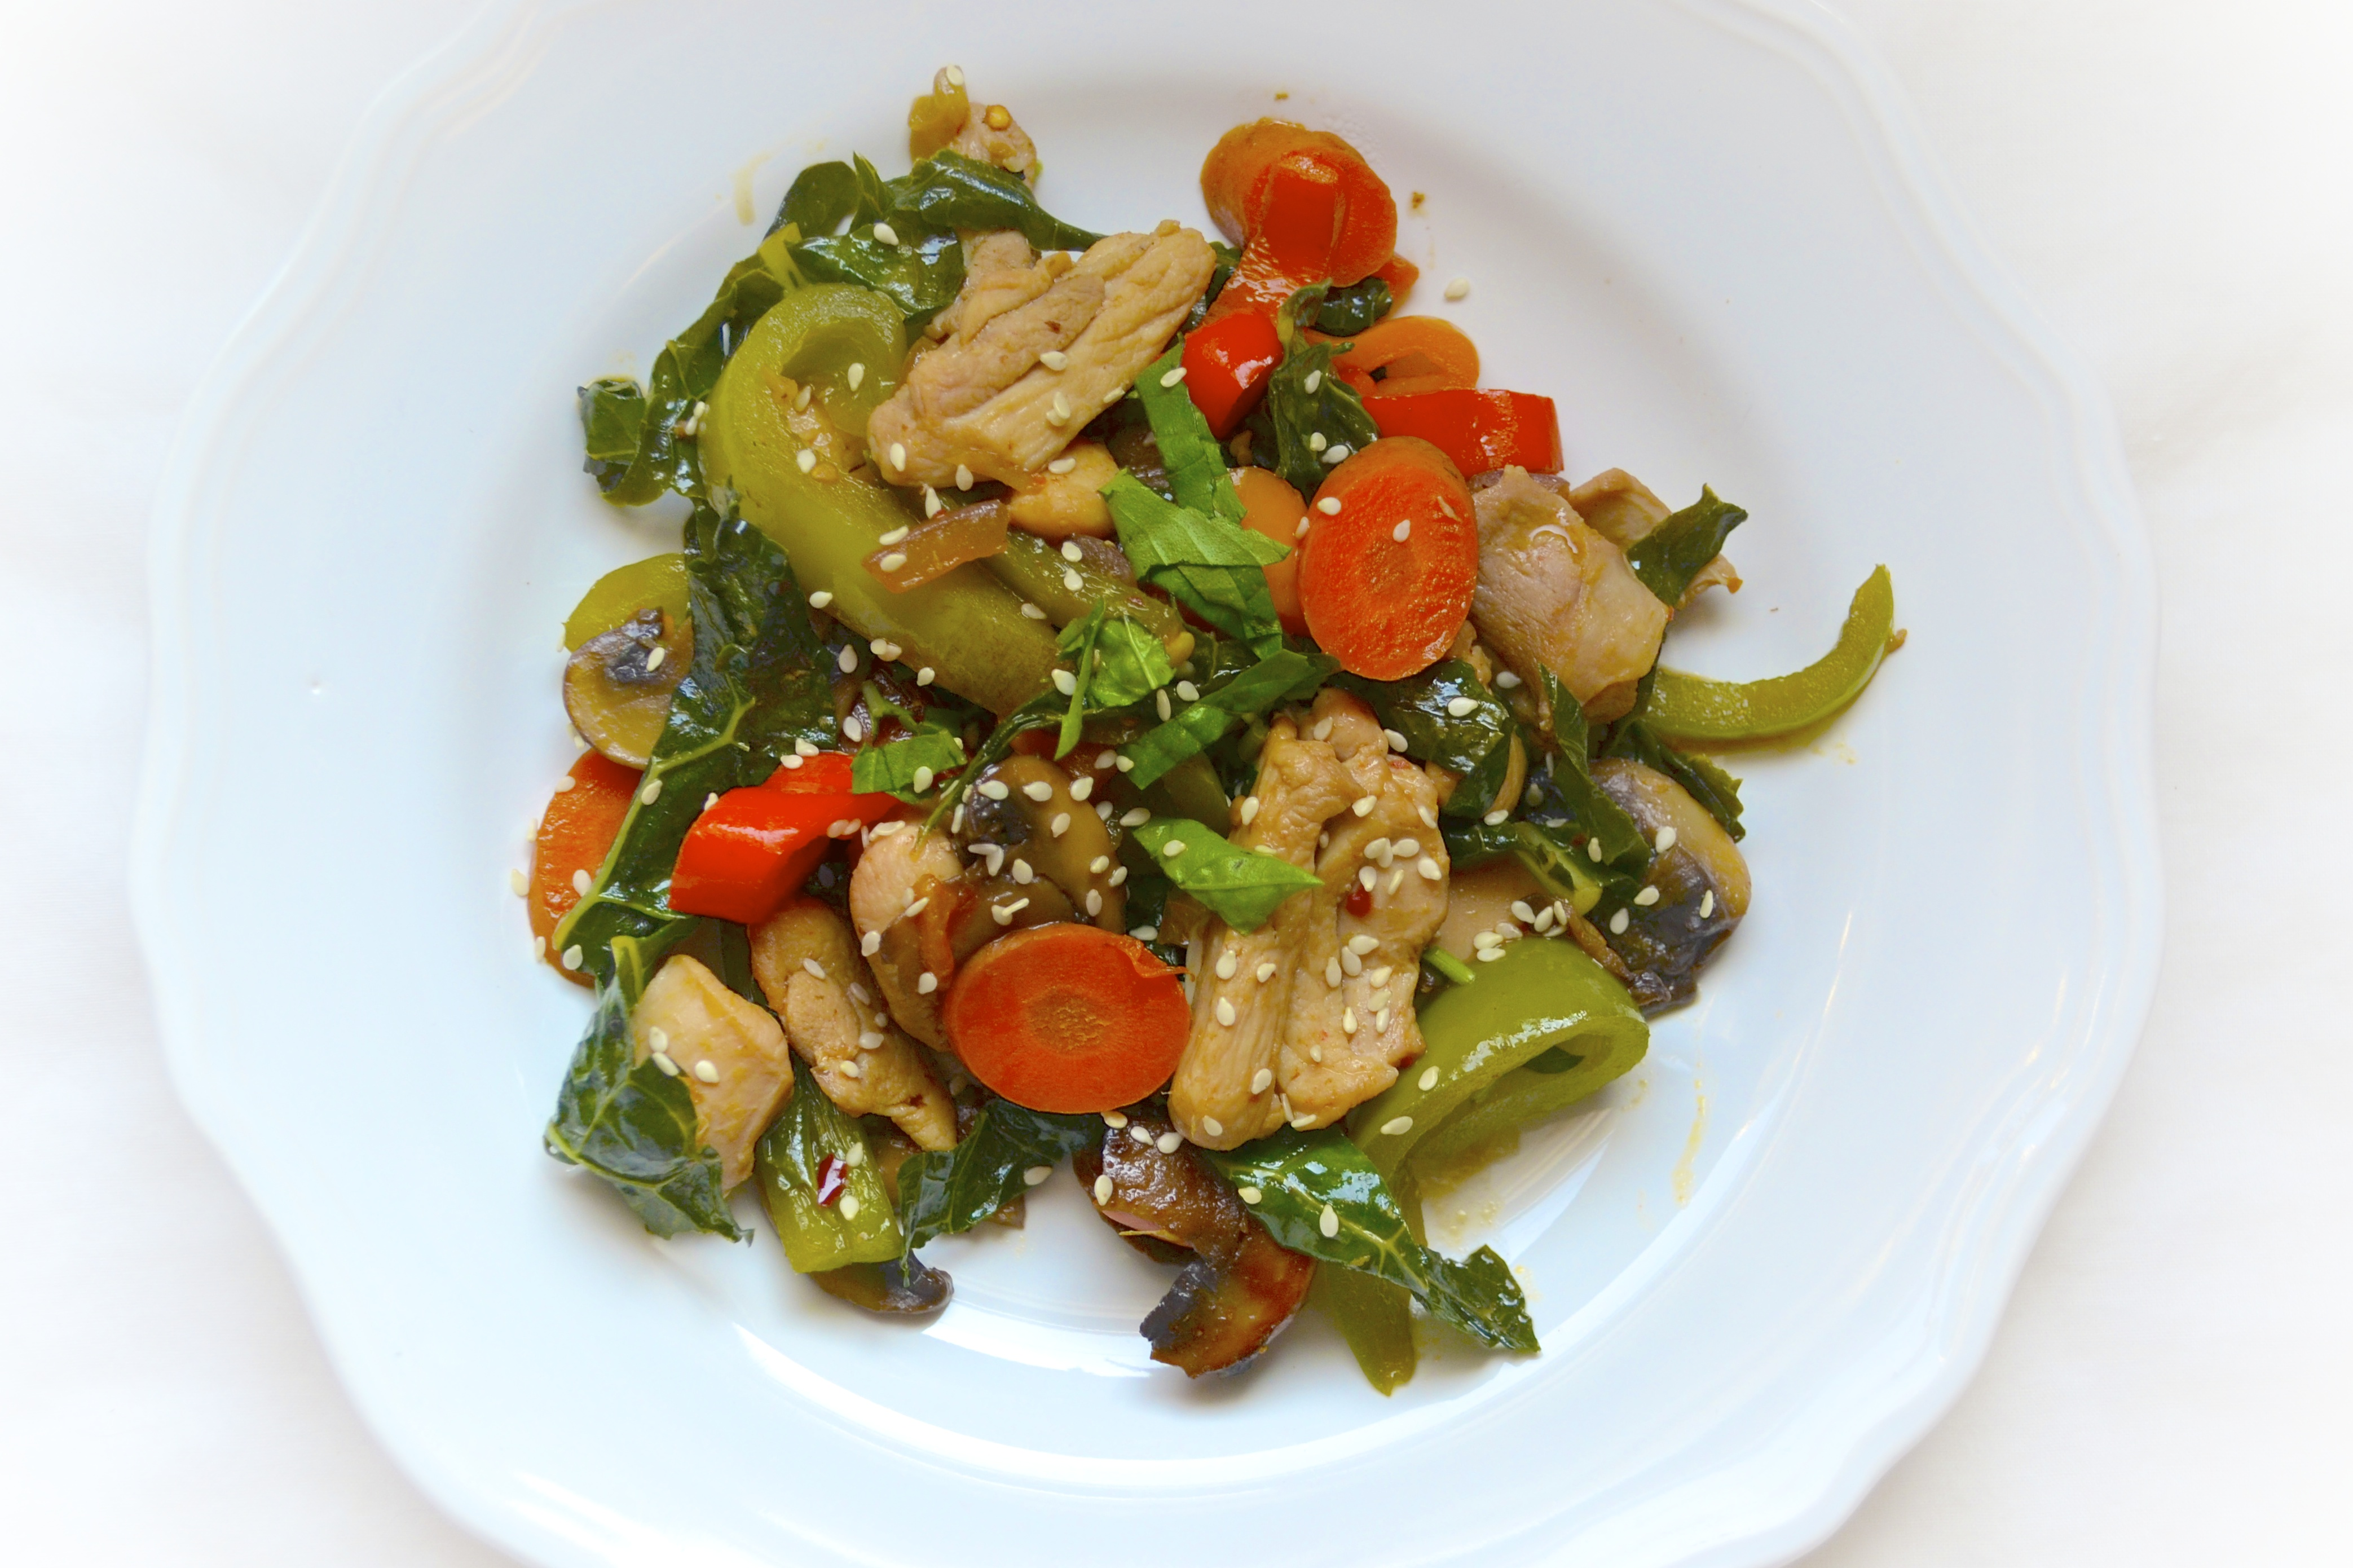 For other stir fry ideas, check out the Food Matters Project here .